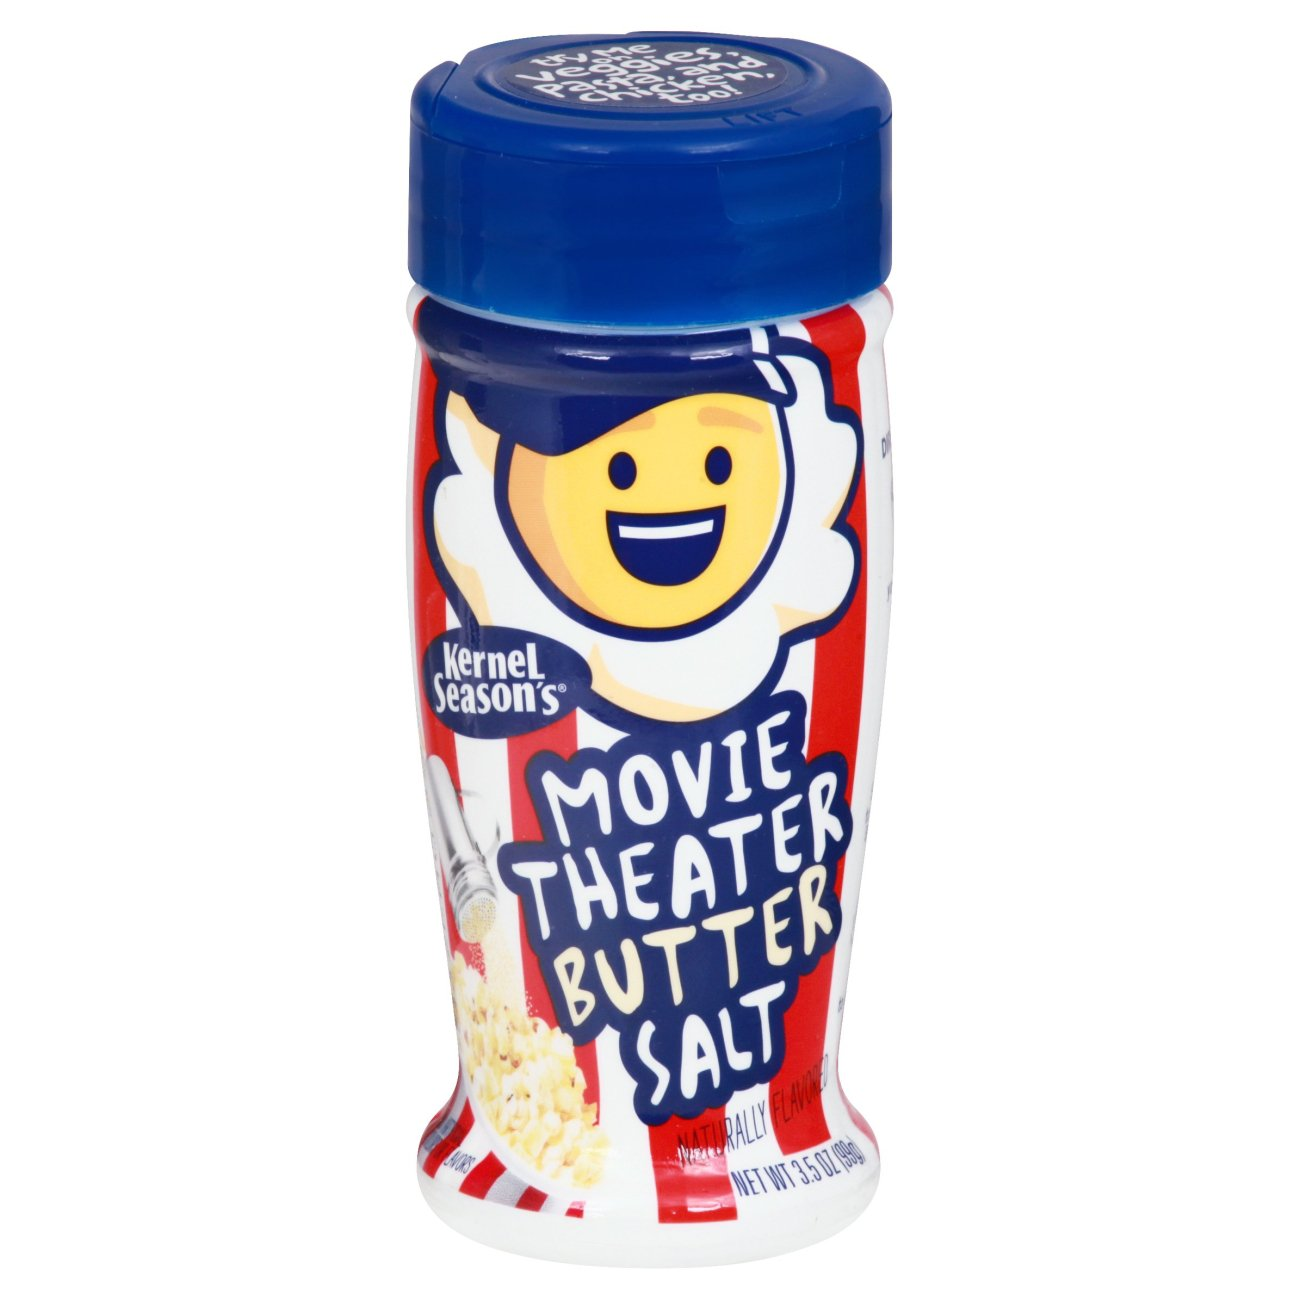 Kernel Seasons Movie Theater Butter Salt Shop Popcorn At H E B